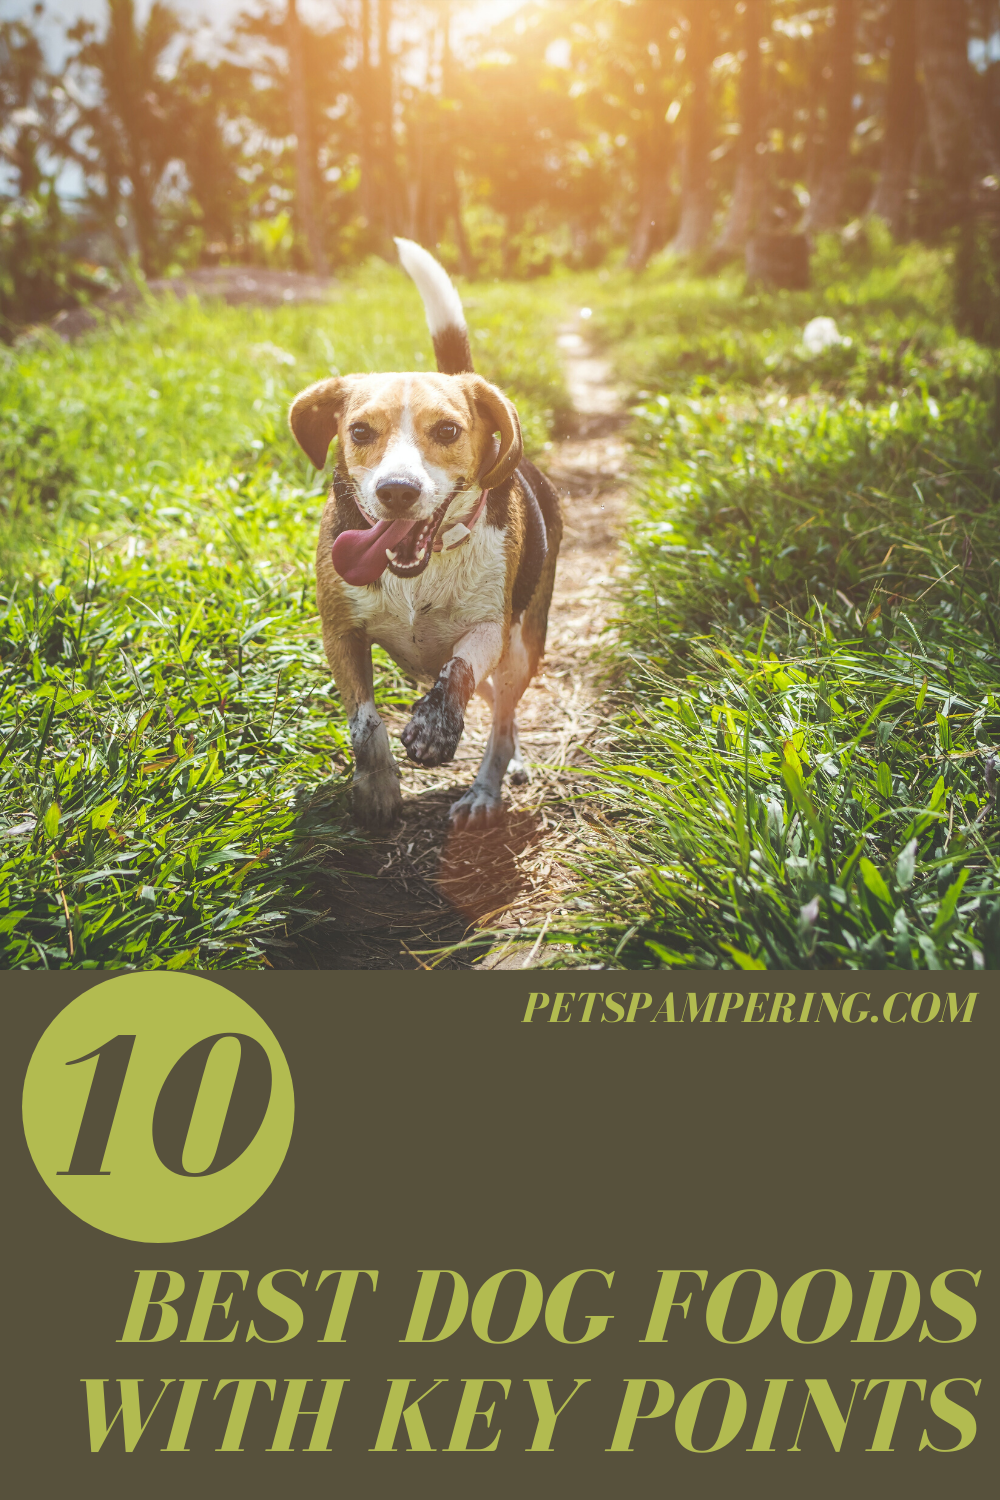 10 Best Dog Foods. List Of Best Dog Foods With Key Points. So If Dogs love us so much it is our duty to give them the best environment that they deserve. And for that, It is necessary to give them high-quality dog food. That is why I have researched and brought you the list of 10 best Dog Foods with 90% of satisfied customers #dog #dogsofinstagram #dogs #dogstagram #doglover #dogoftheday #doglife #doglovers #doggy #dogsofinsta #dogsofig #doggo #doglove #dogsitting #dogslife #dogsofinstaworld